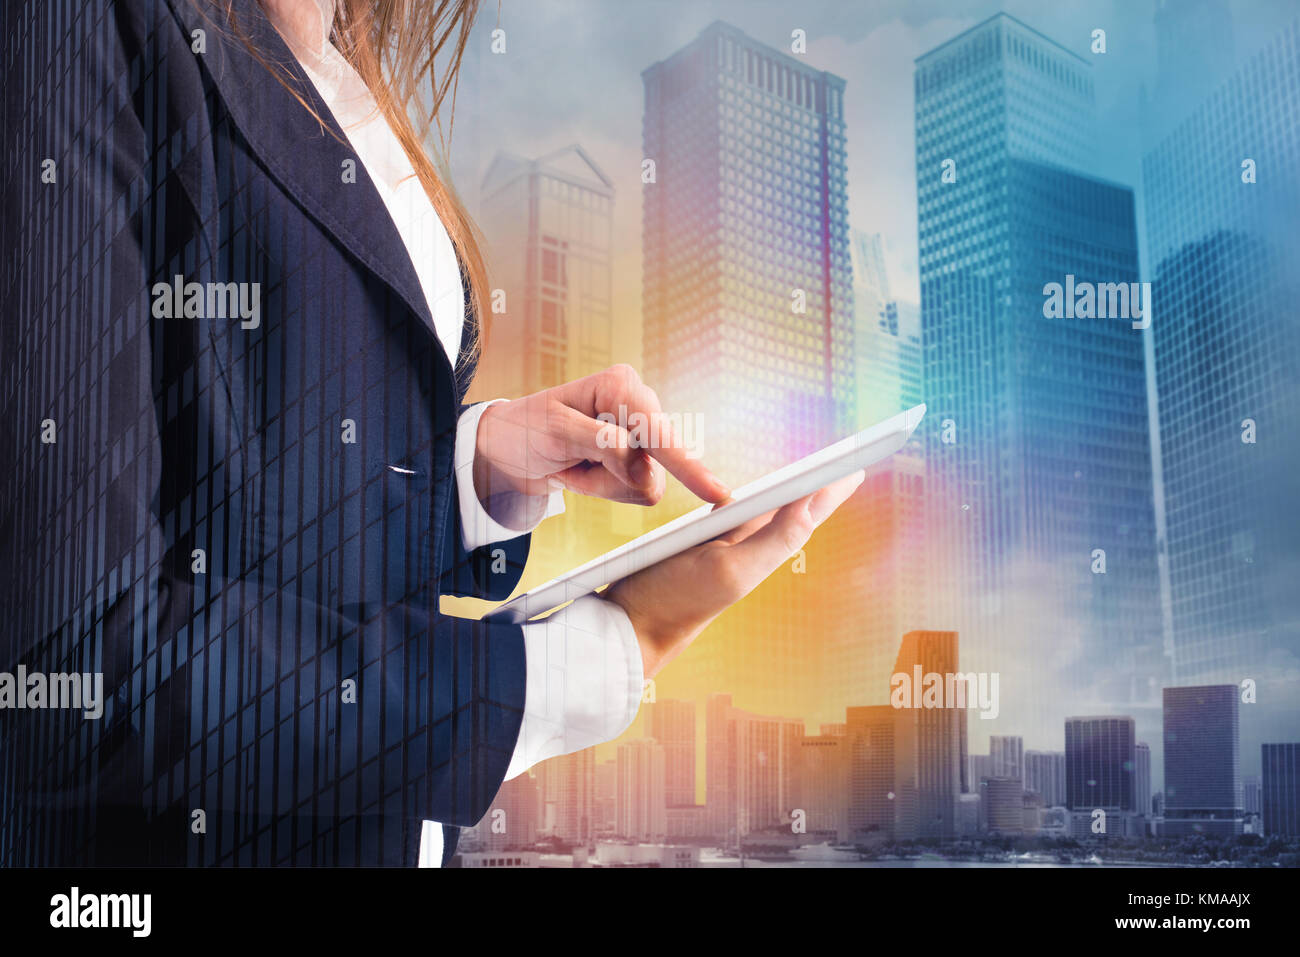 Businesswoman shares document with tablet. Internet concept - Stock Image